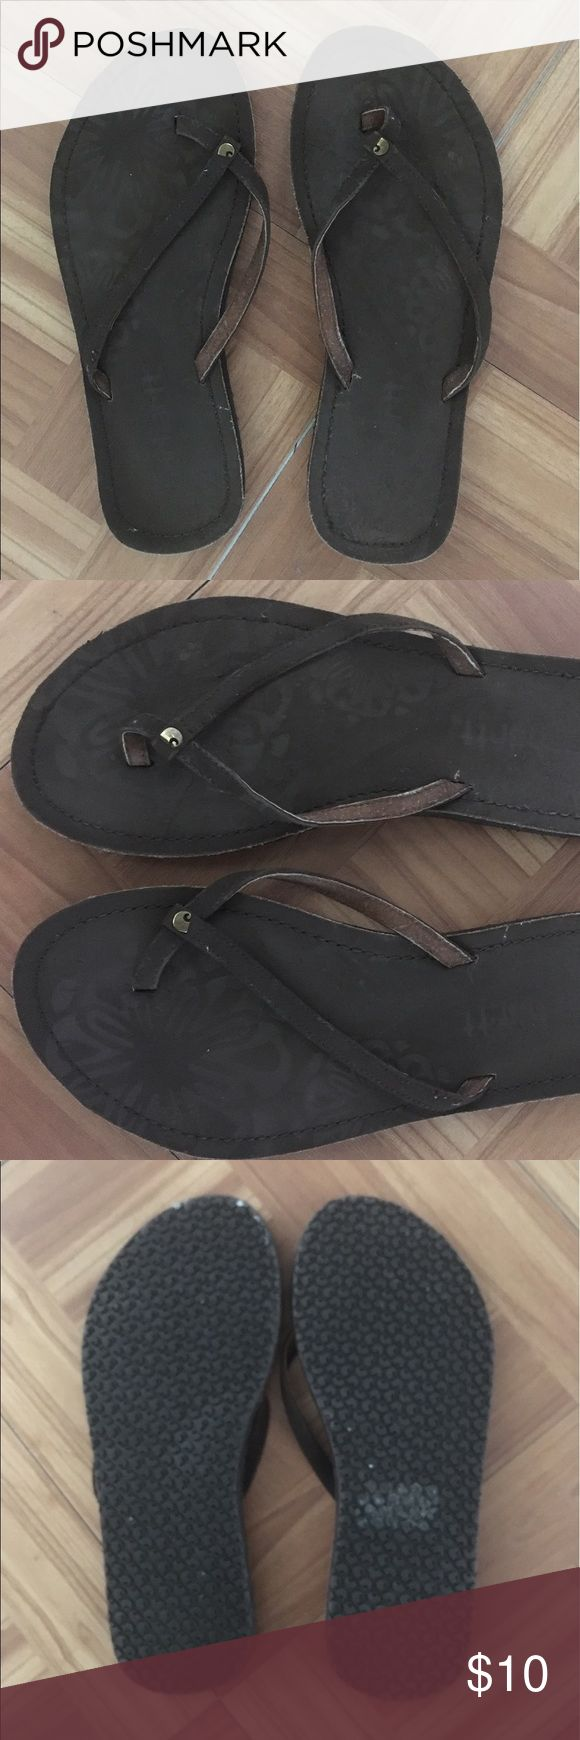 Carhartt Brown Leather Flip-Flop Sandals (8) Carhartt Dark Brown Leather Flip-Flop Sandals (Size 8). Slip Free Soles. *Never Worn!! Carhartt Shoes Sandals